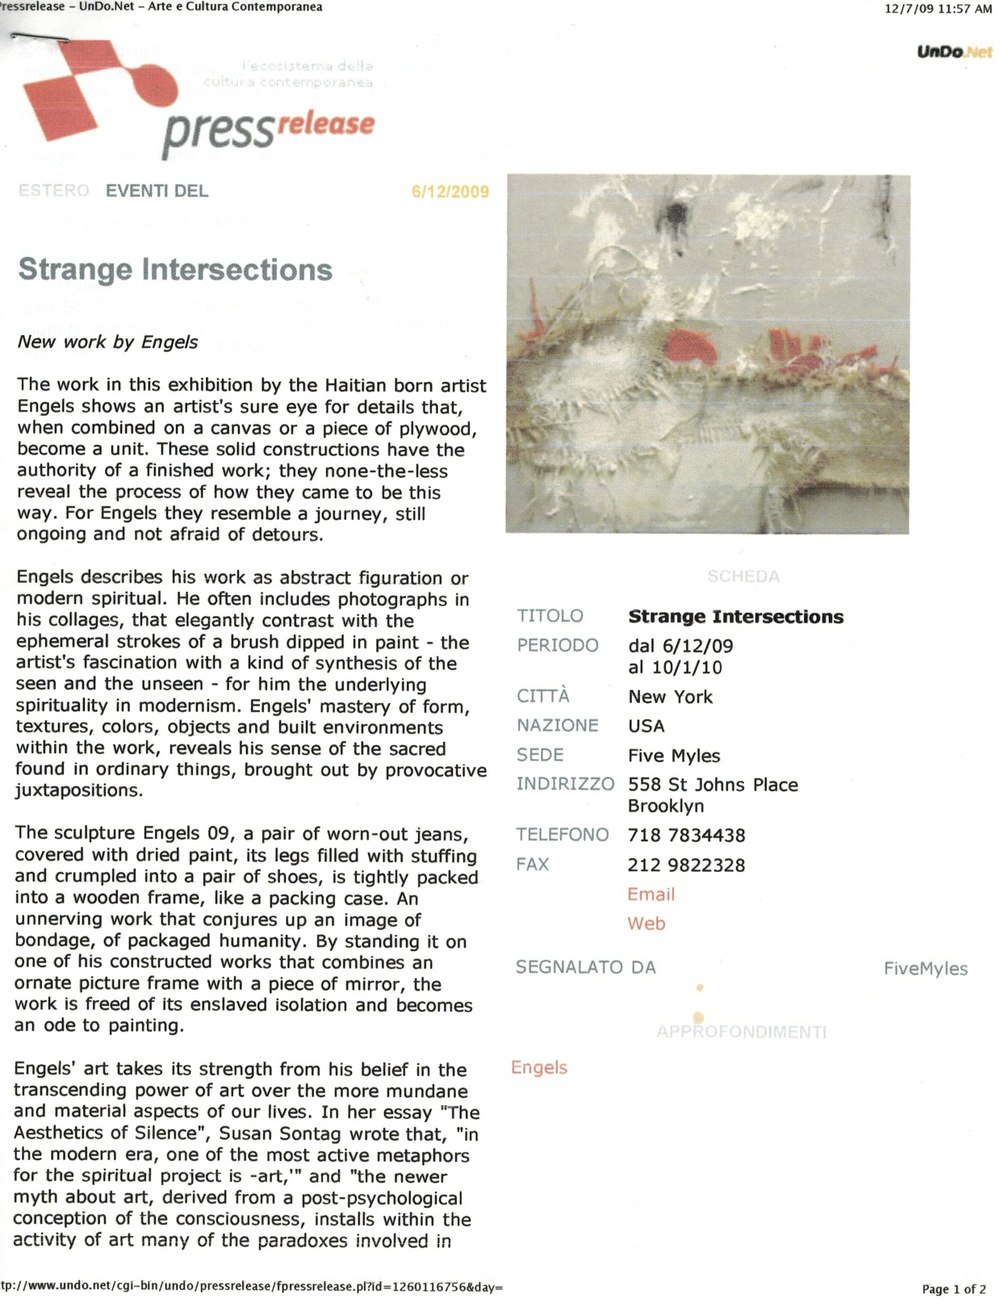 Strange Intersections-UnDo.net-p1.jpg